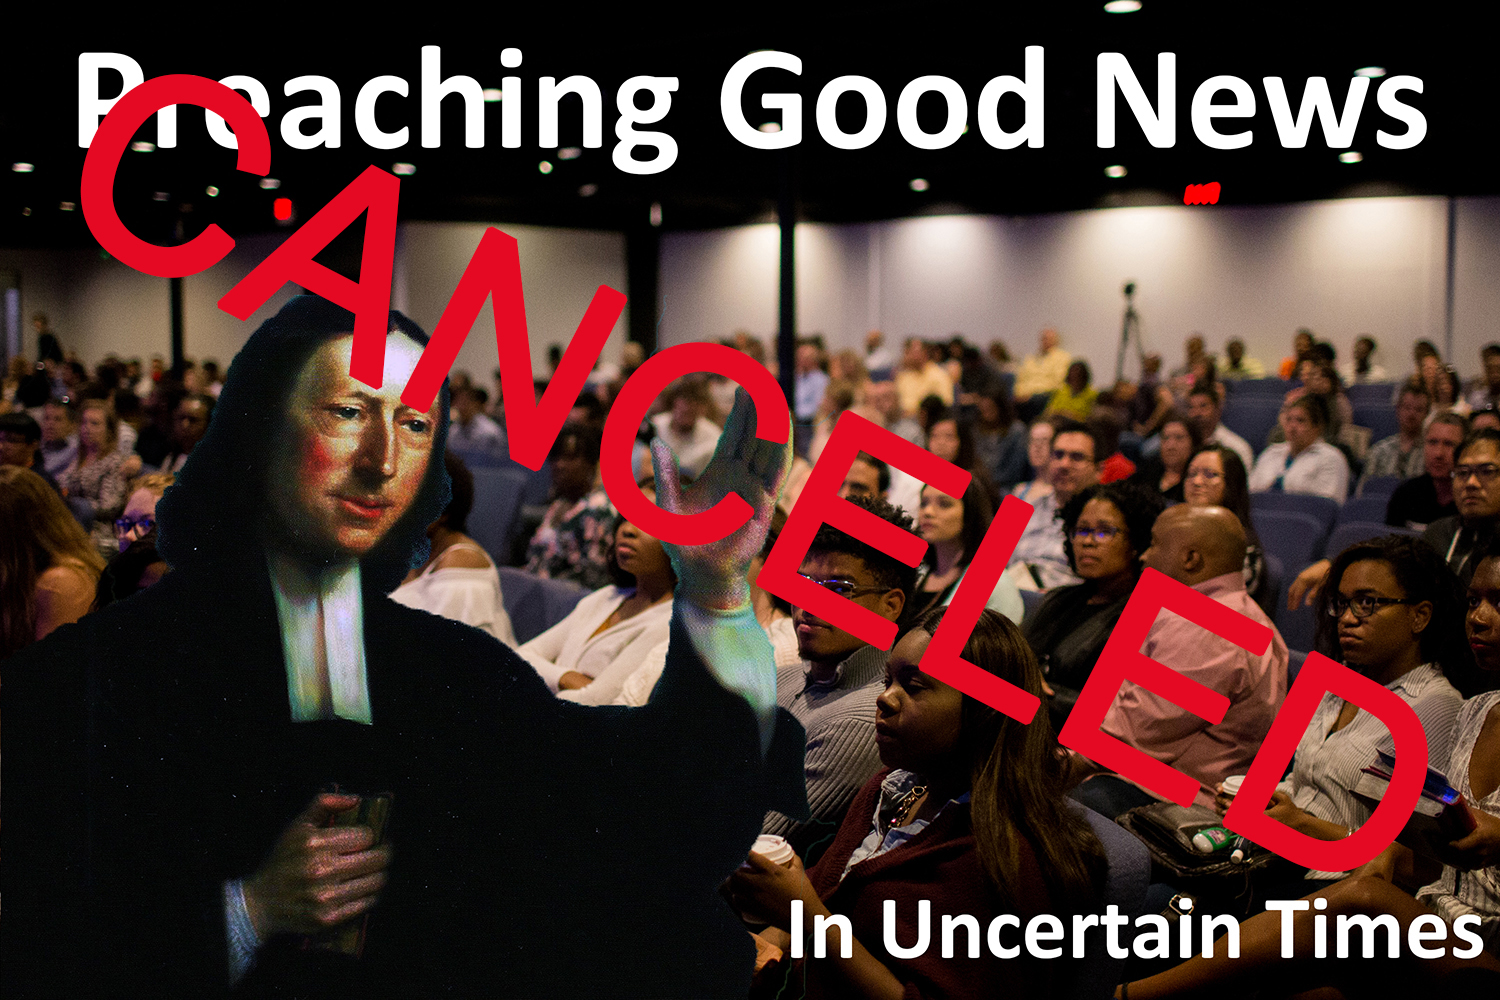 Preaching Good News in uncertain times-web-CANCELED